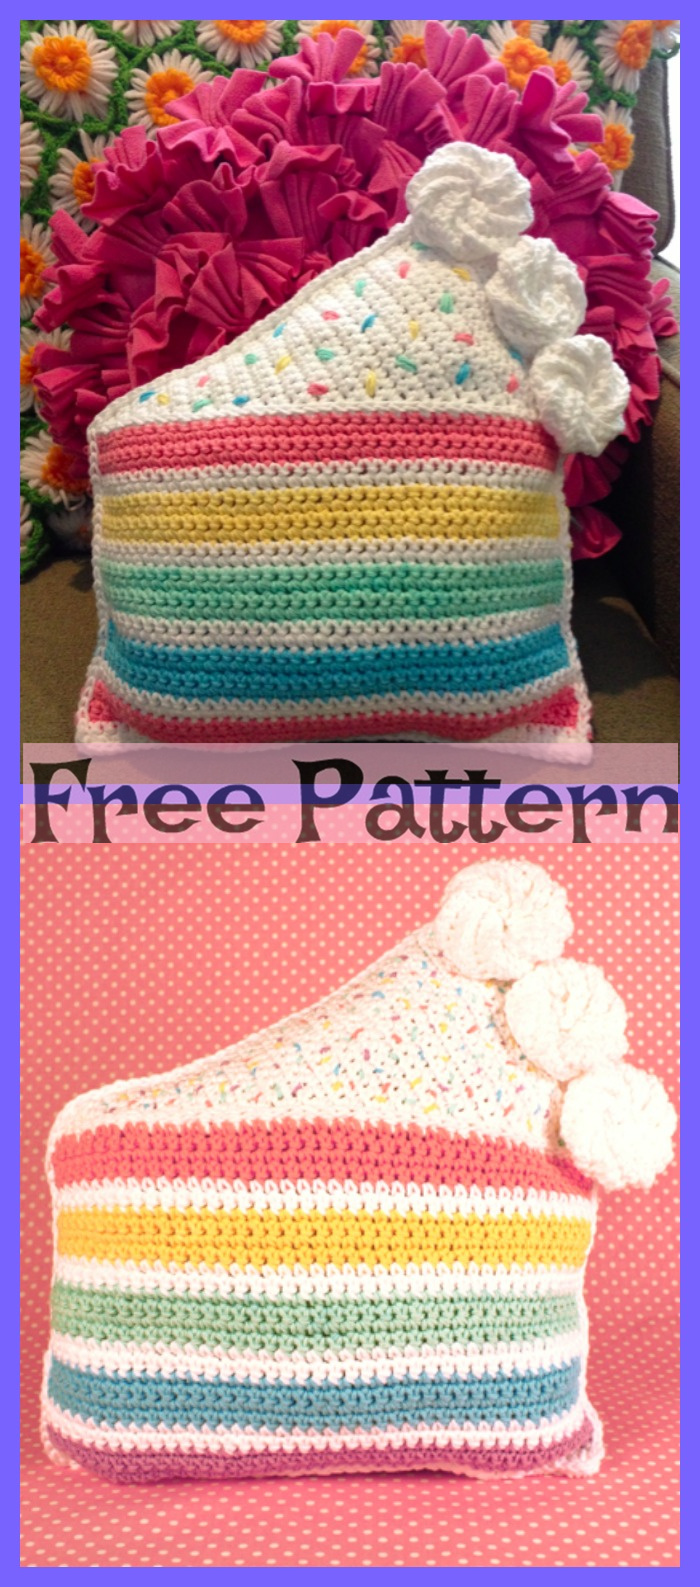 diy4ever- Crochet Rainbow Pillows - Free Patterns